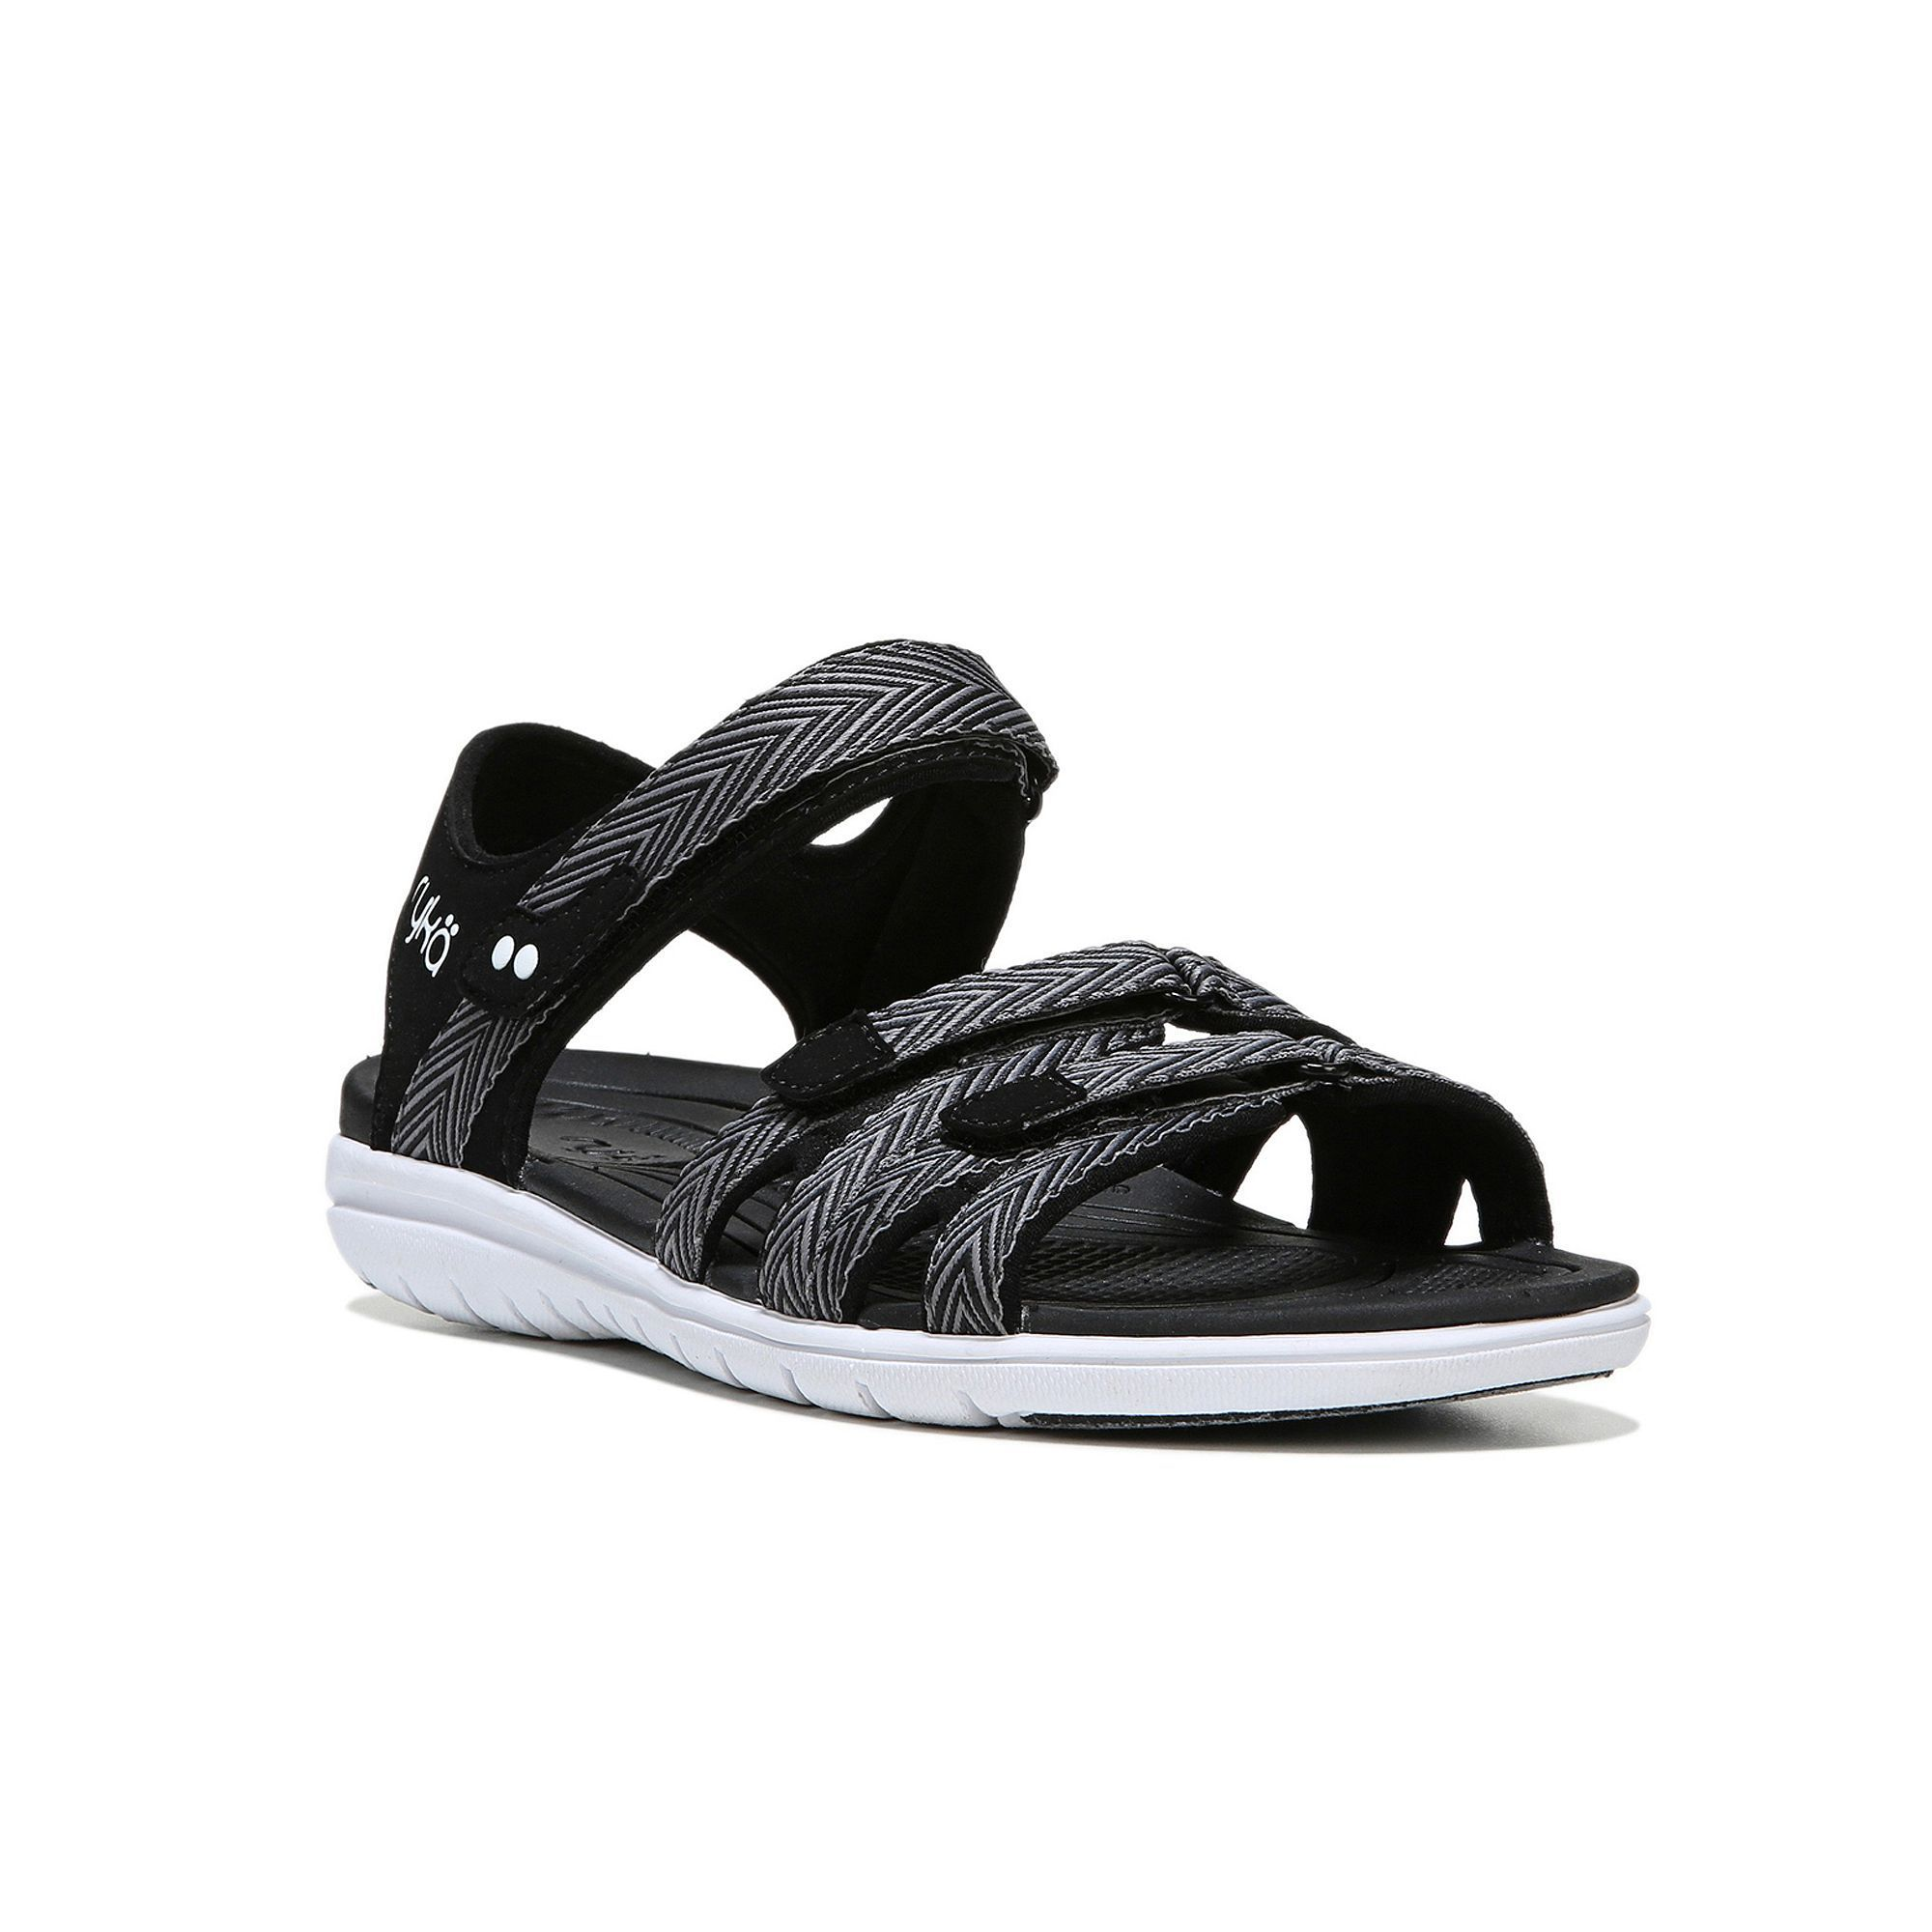 Ryka Savannah For Women On Sale